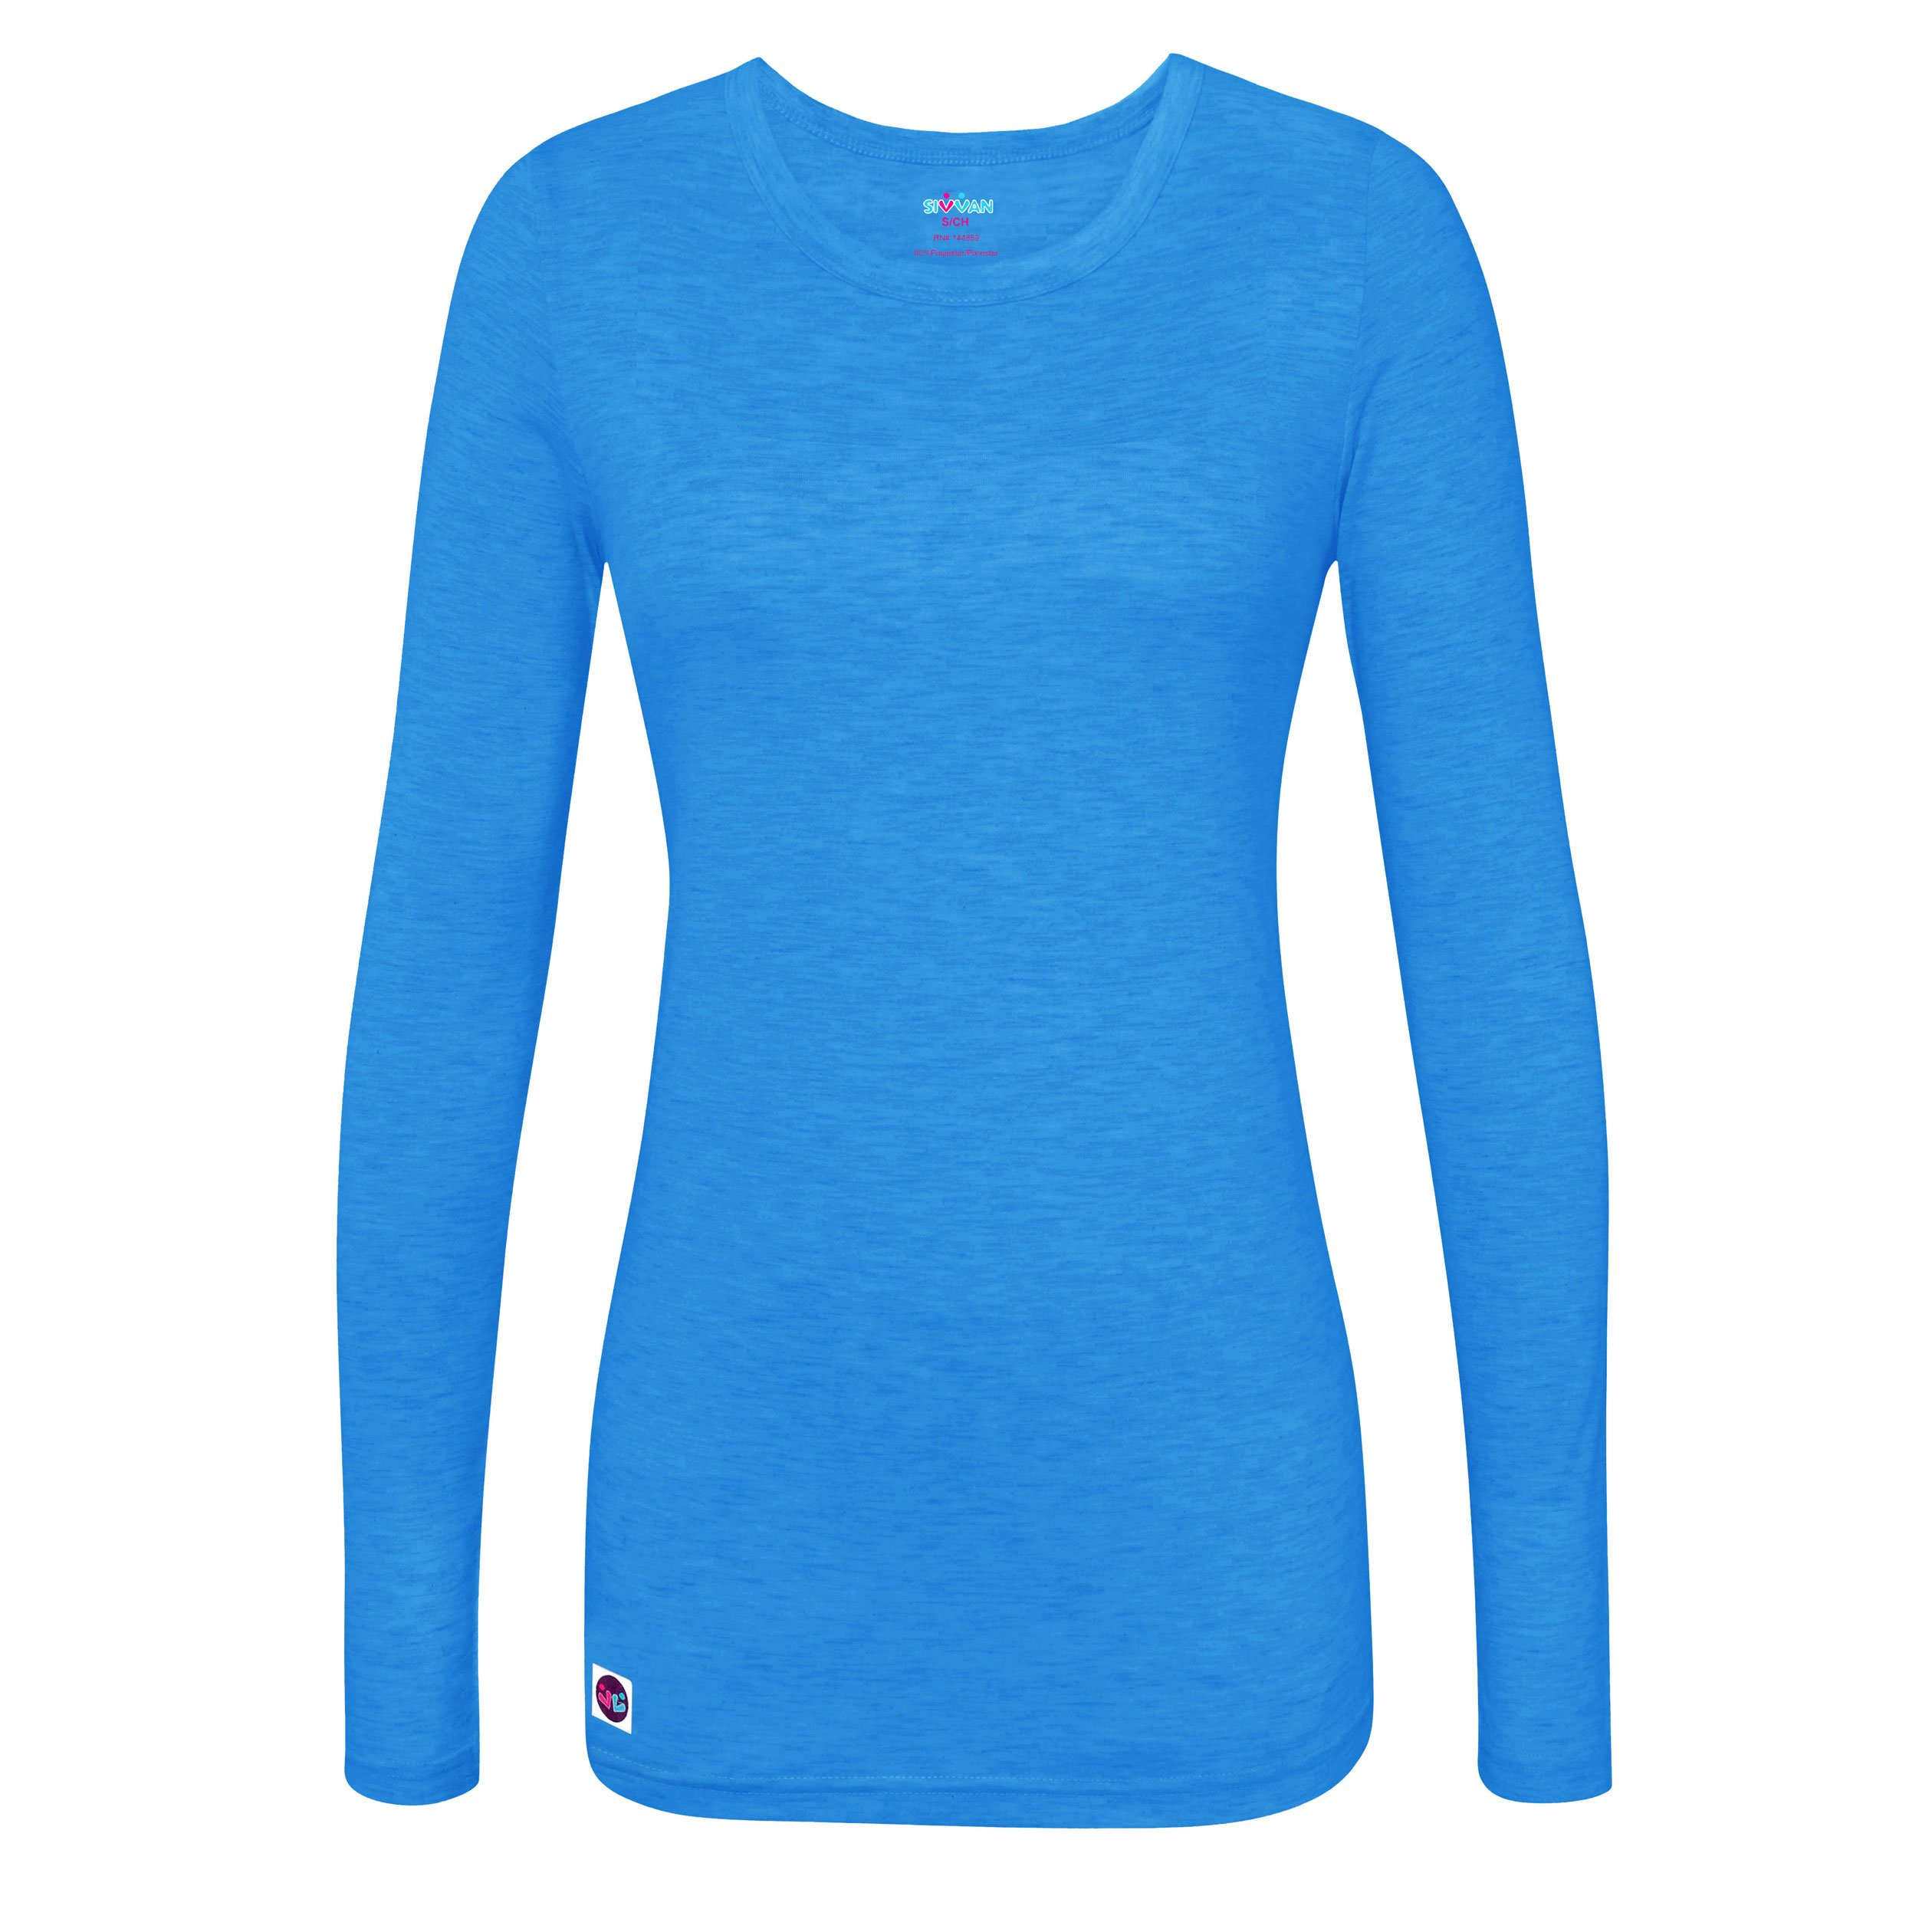 Sivvan Women's Comfort Long Sleeve T-Shirt / Underscrub Tee - S8500 - Heather Pool Blue - XXS by Sivvan